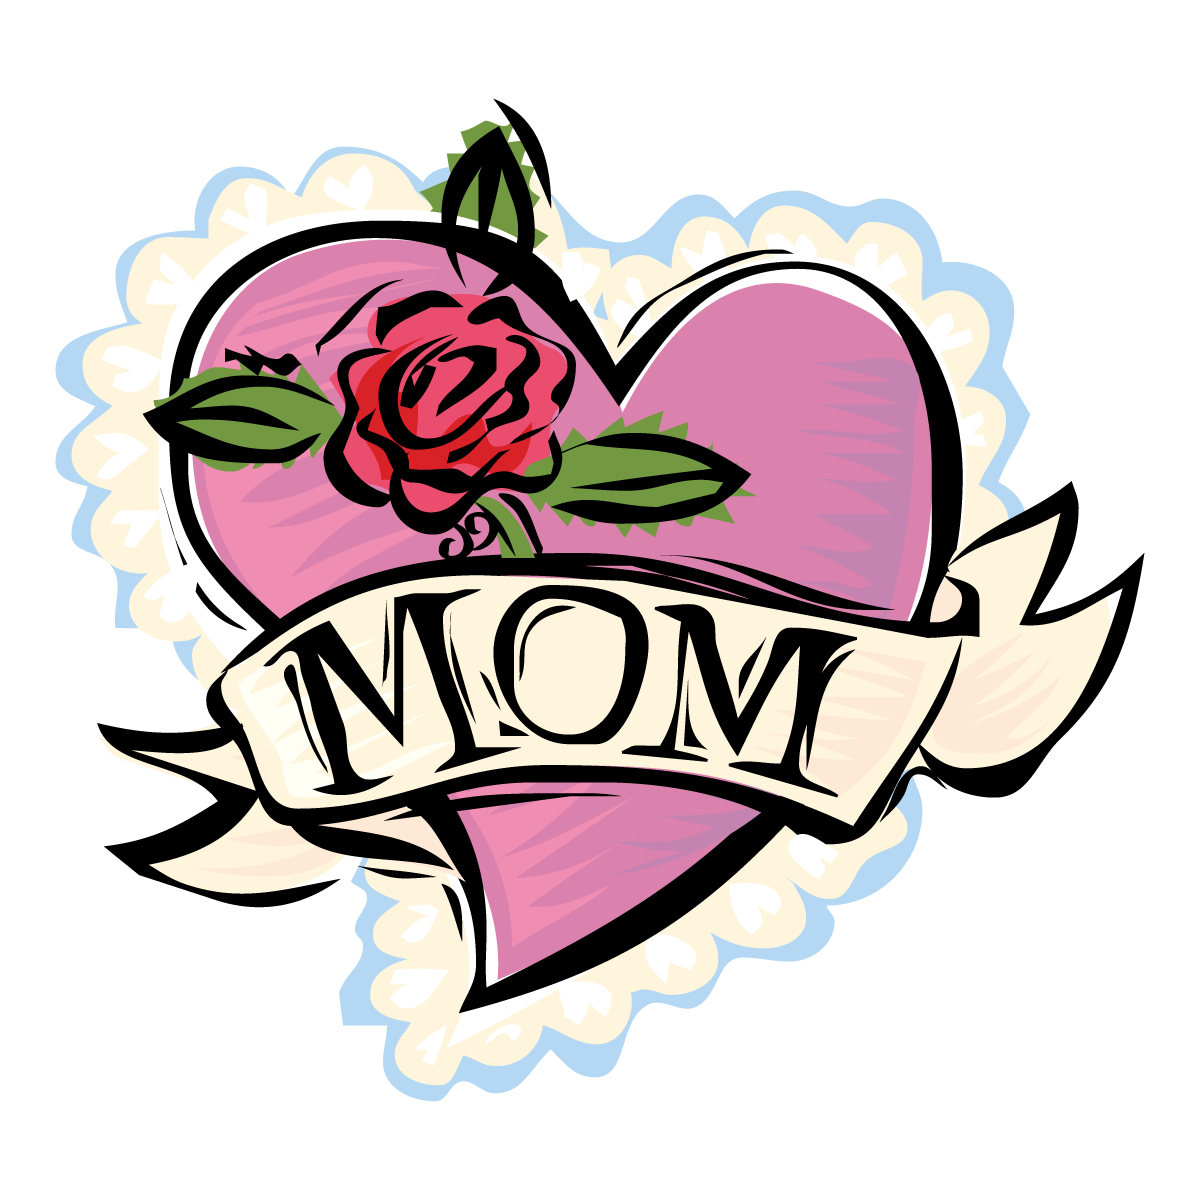 Black and white clipart of christian mothers day clip art black and white download Free Mommy Day Cliparts, Download Free Clip Art, Free Clip Art on ... clip art black and white download